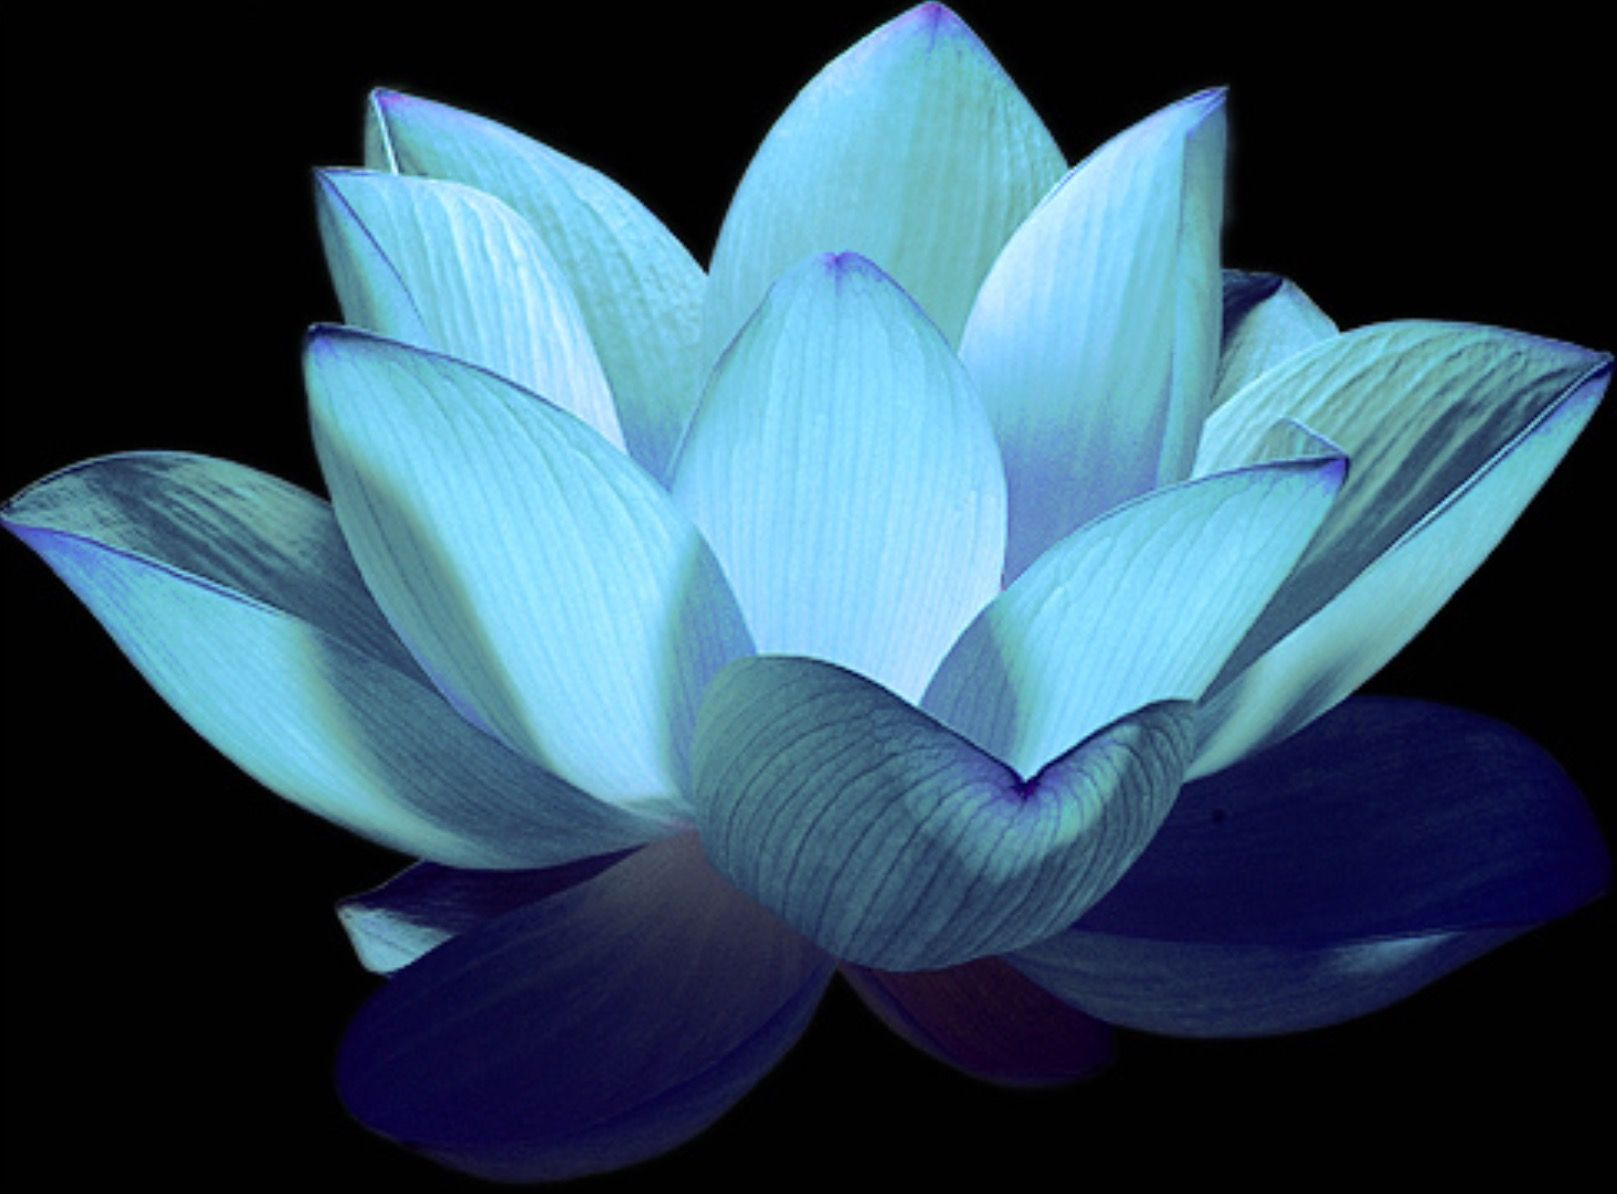 Pin by tori seright on tattoos pinterest lotus flowers and plants jon rappoport recent events about which i wont go into detail have caused me to say we are having a spiritual experience izmirmasajfo